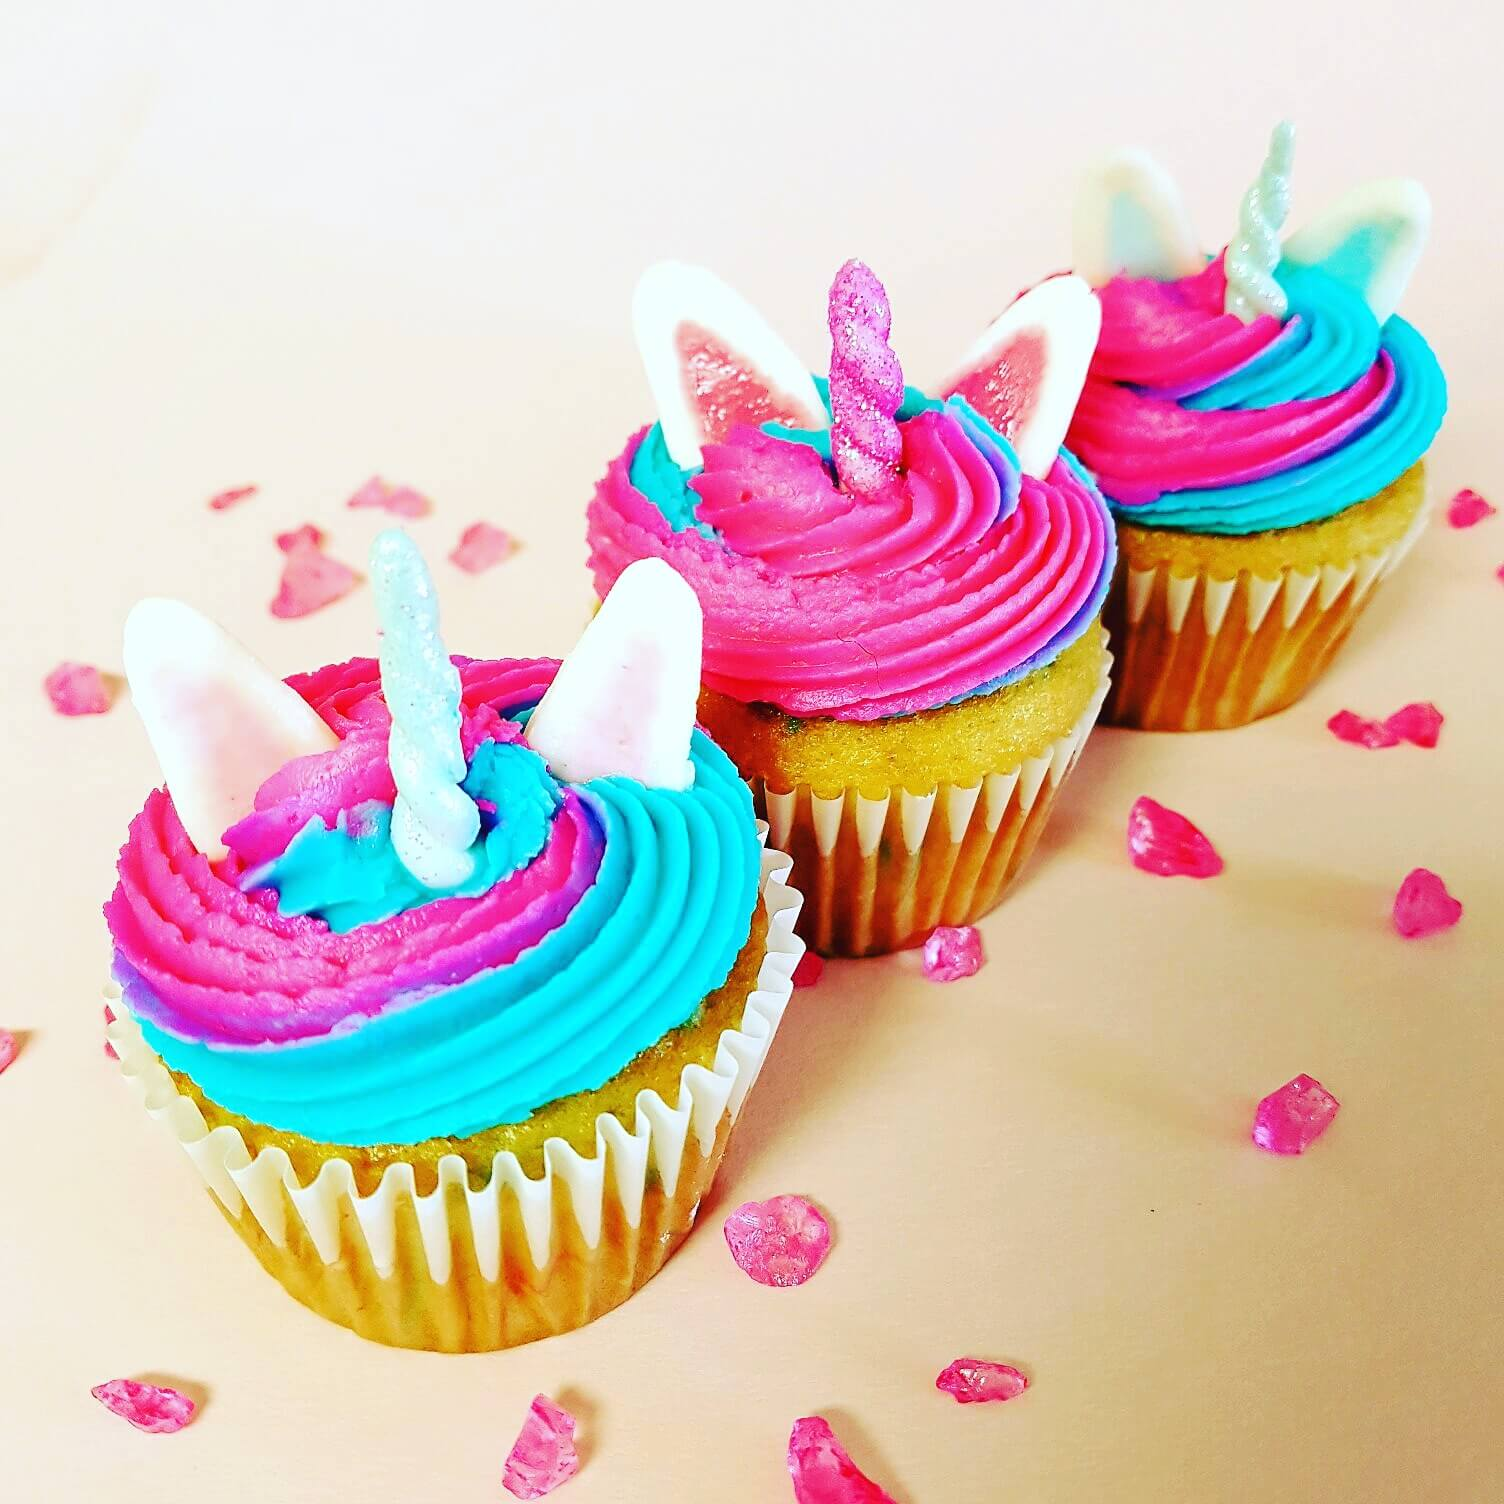 Adorable unicorn cupcakes decorations tots family for Cupcake home decorations